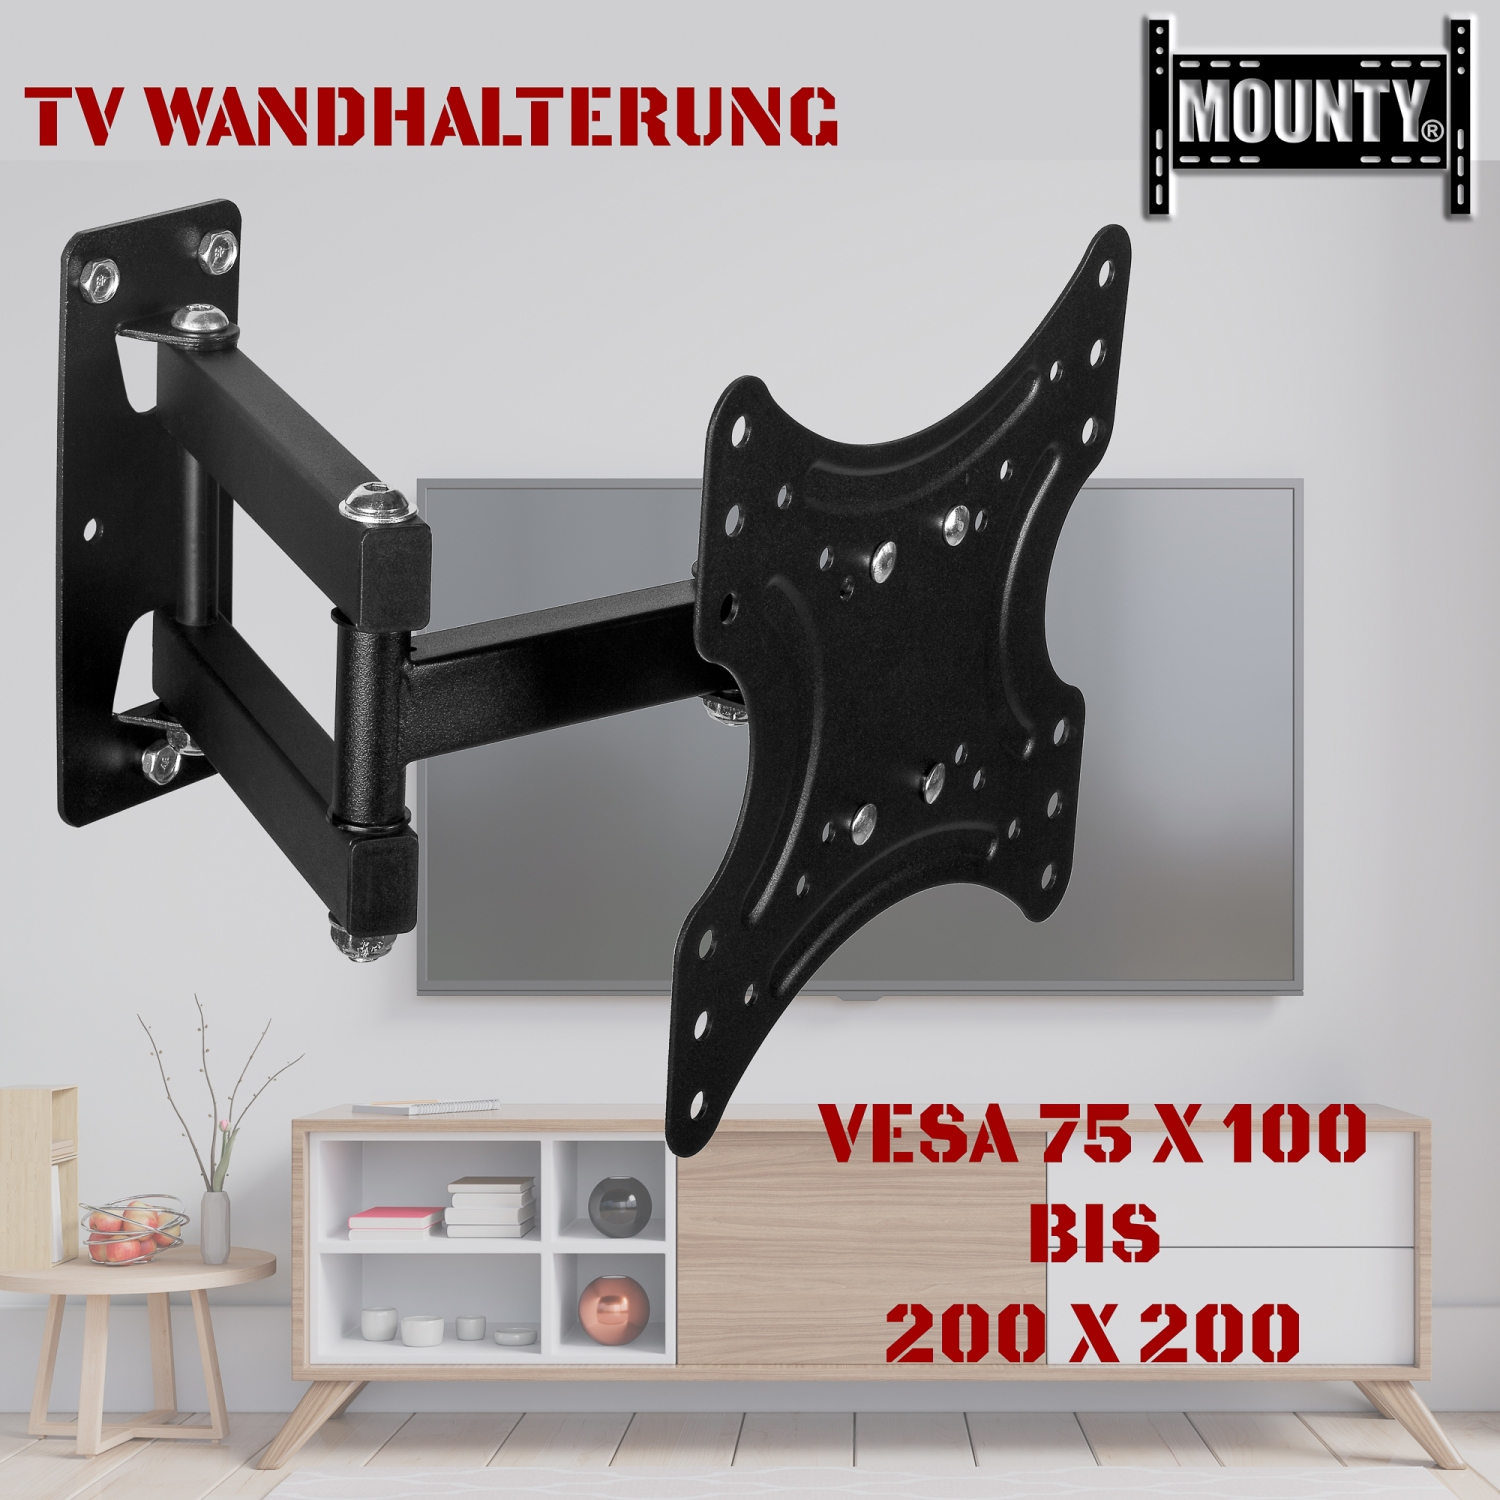 tv wandhalterung led halterung bis vesa 200x200 schwenkbar neigbar mounty my157. Black Bedroom Furniture Sets. Home Design Ideas